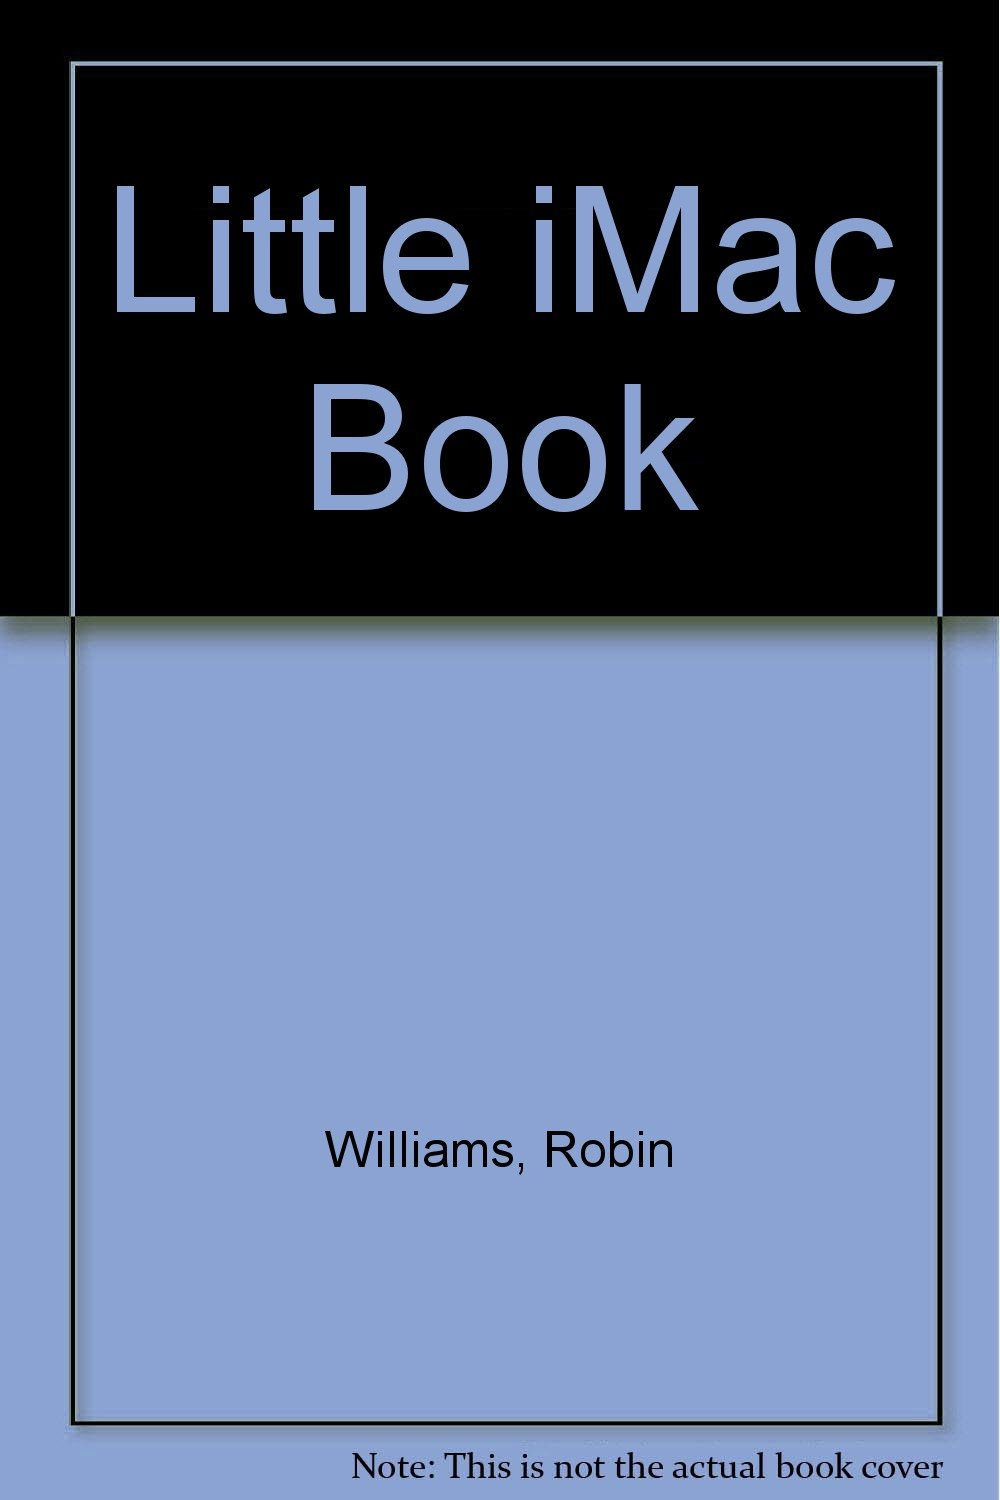 little-imac-book